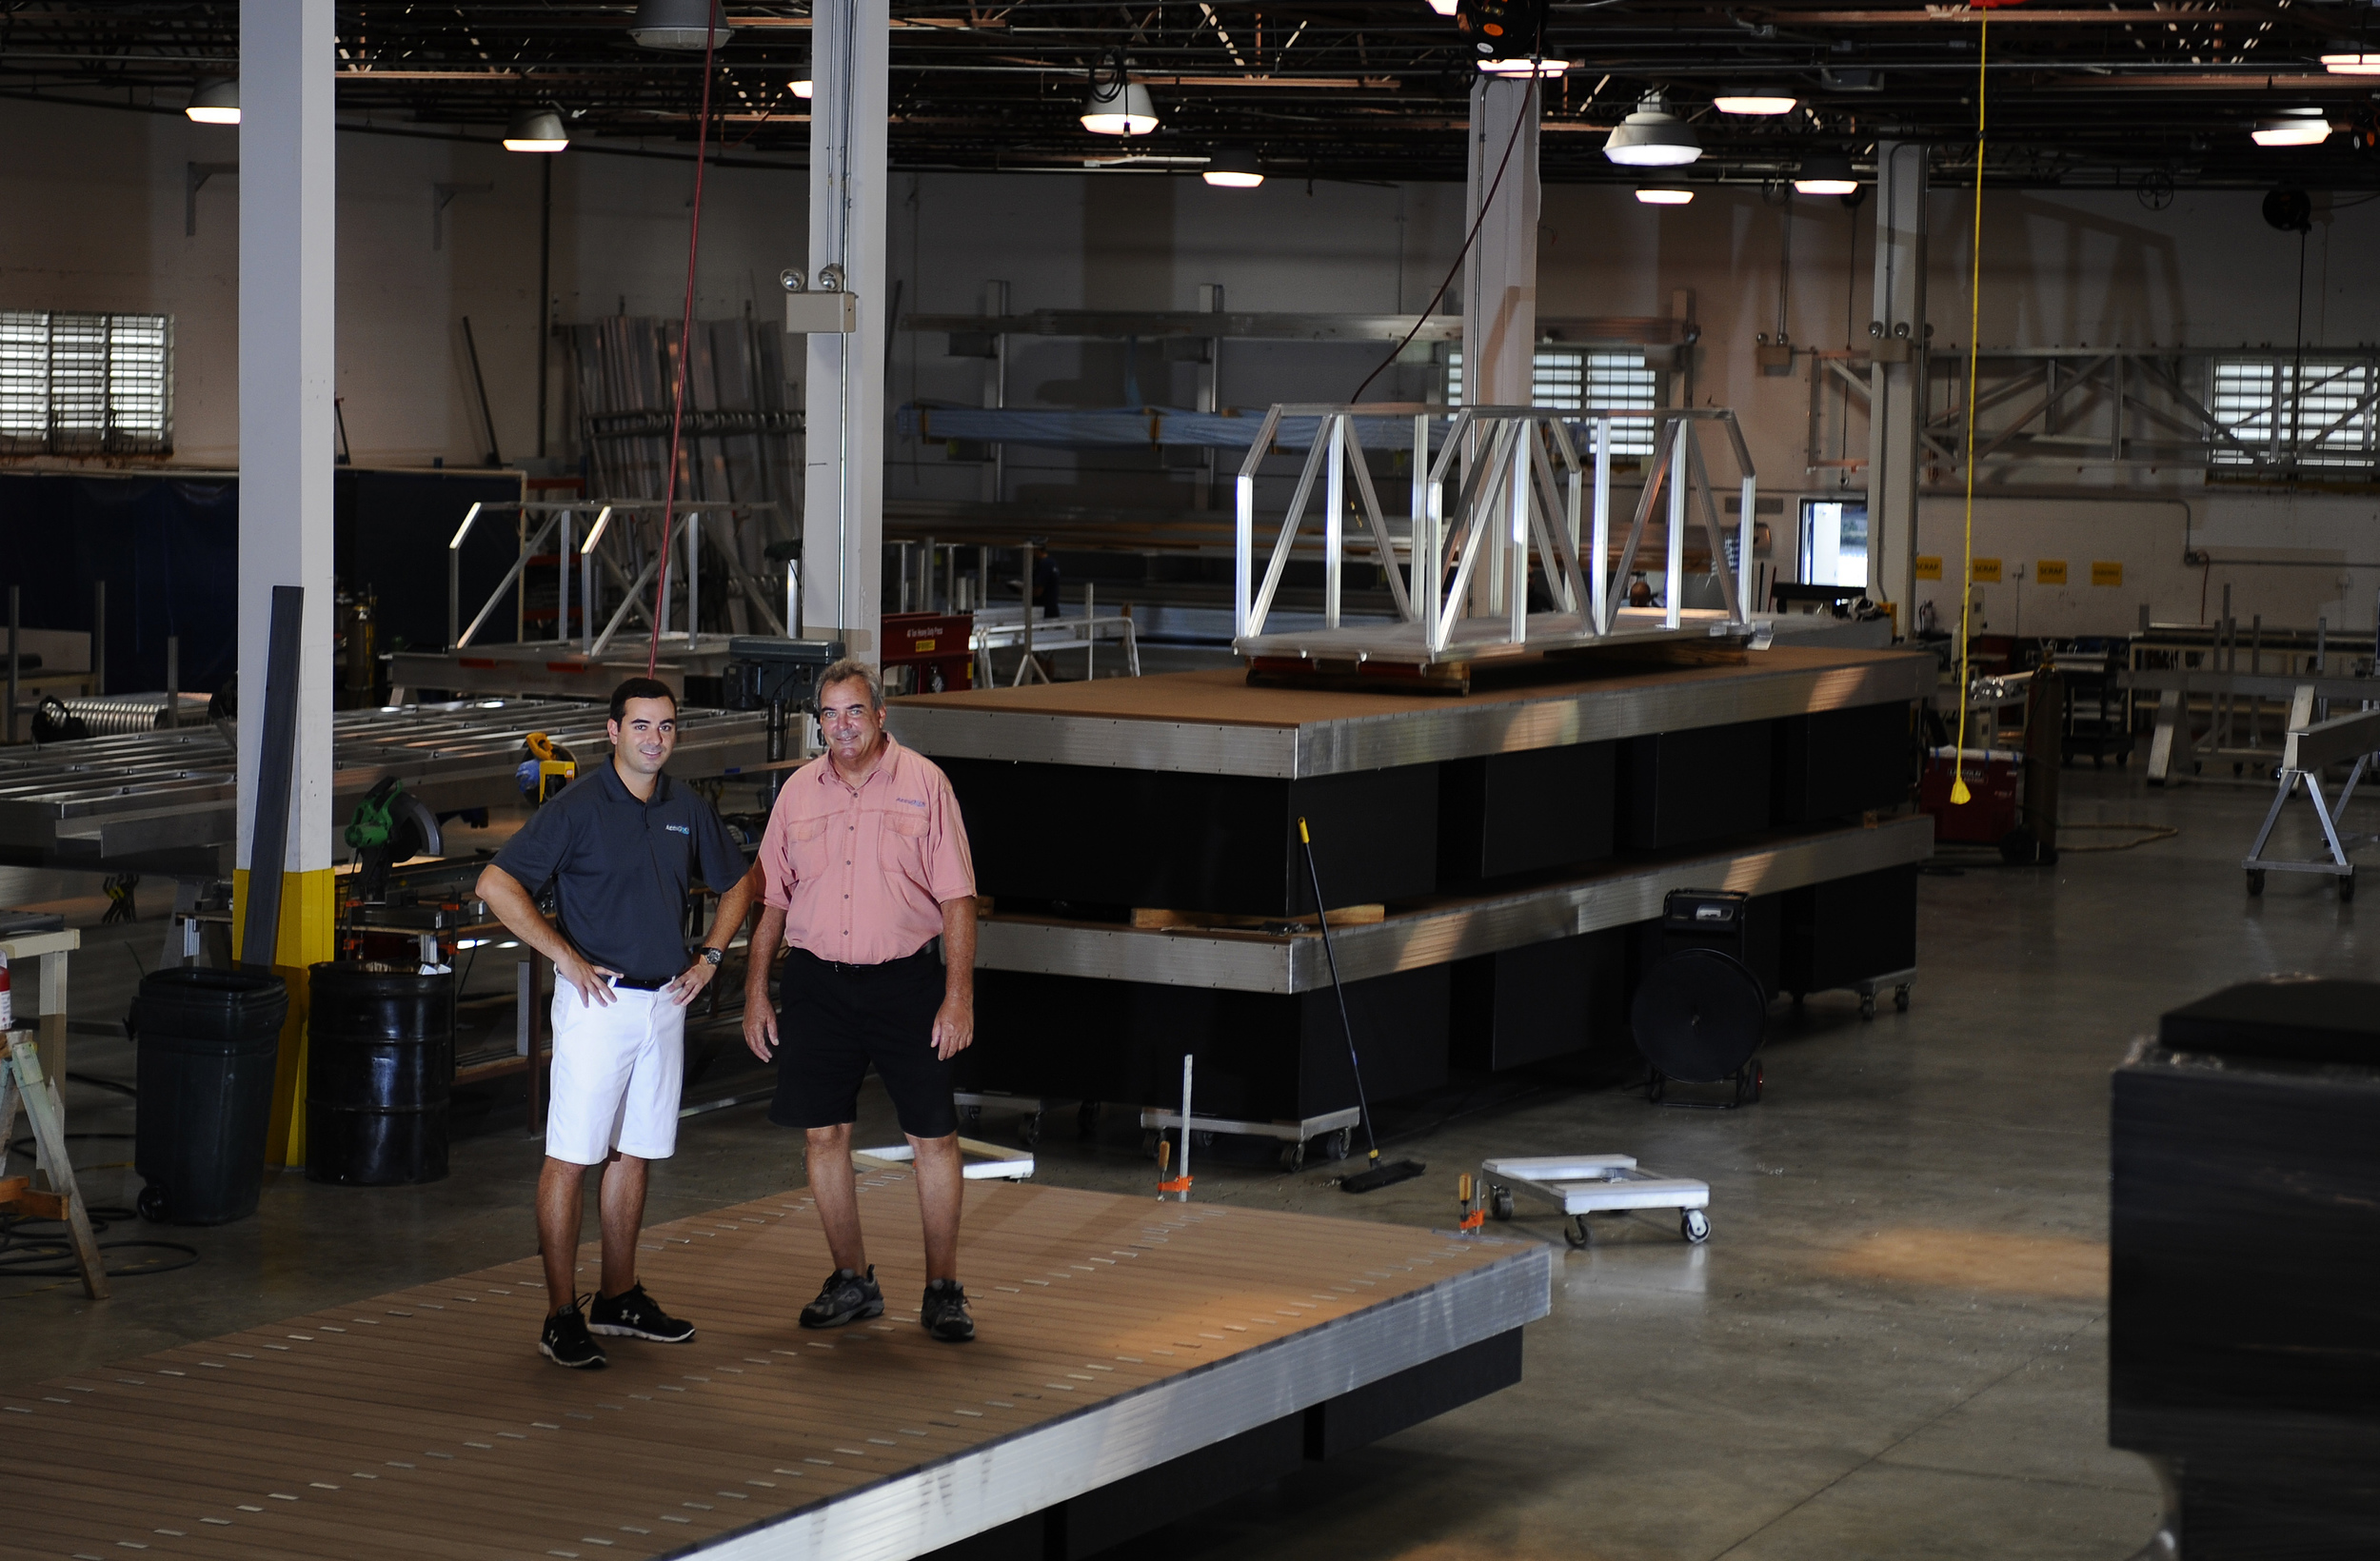 Father and son duo Johnand Jason Harrison pose for a portrait inside their warehouse located in Pompano Beach, Florida. The family owned businessproduces floating docks, floating work platforms, swimming docks and related equipment for the recreational marine industry and for residential use.